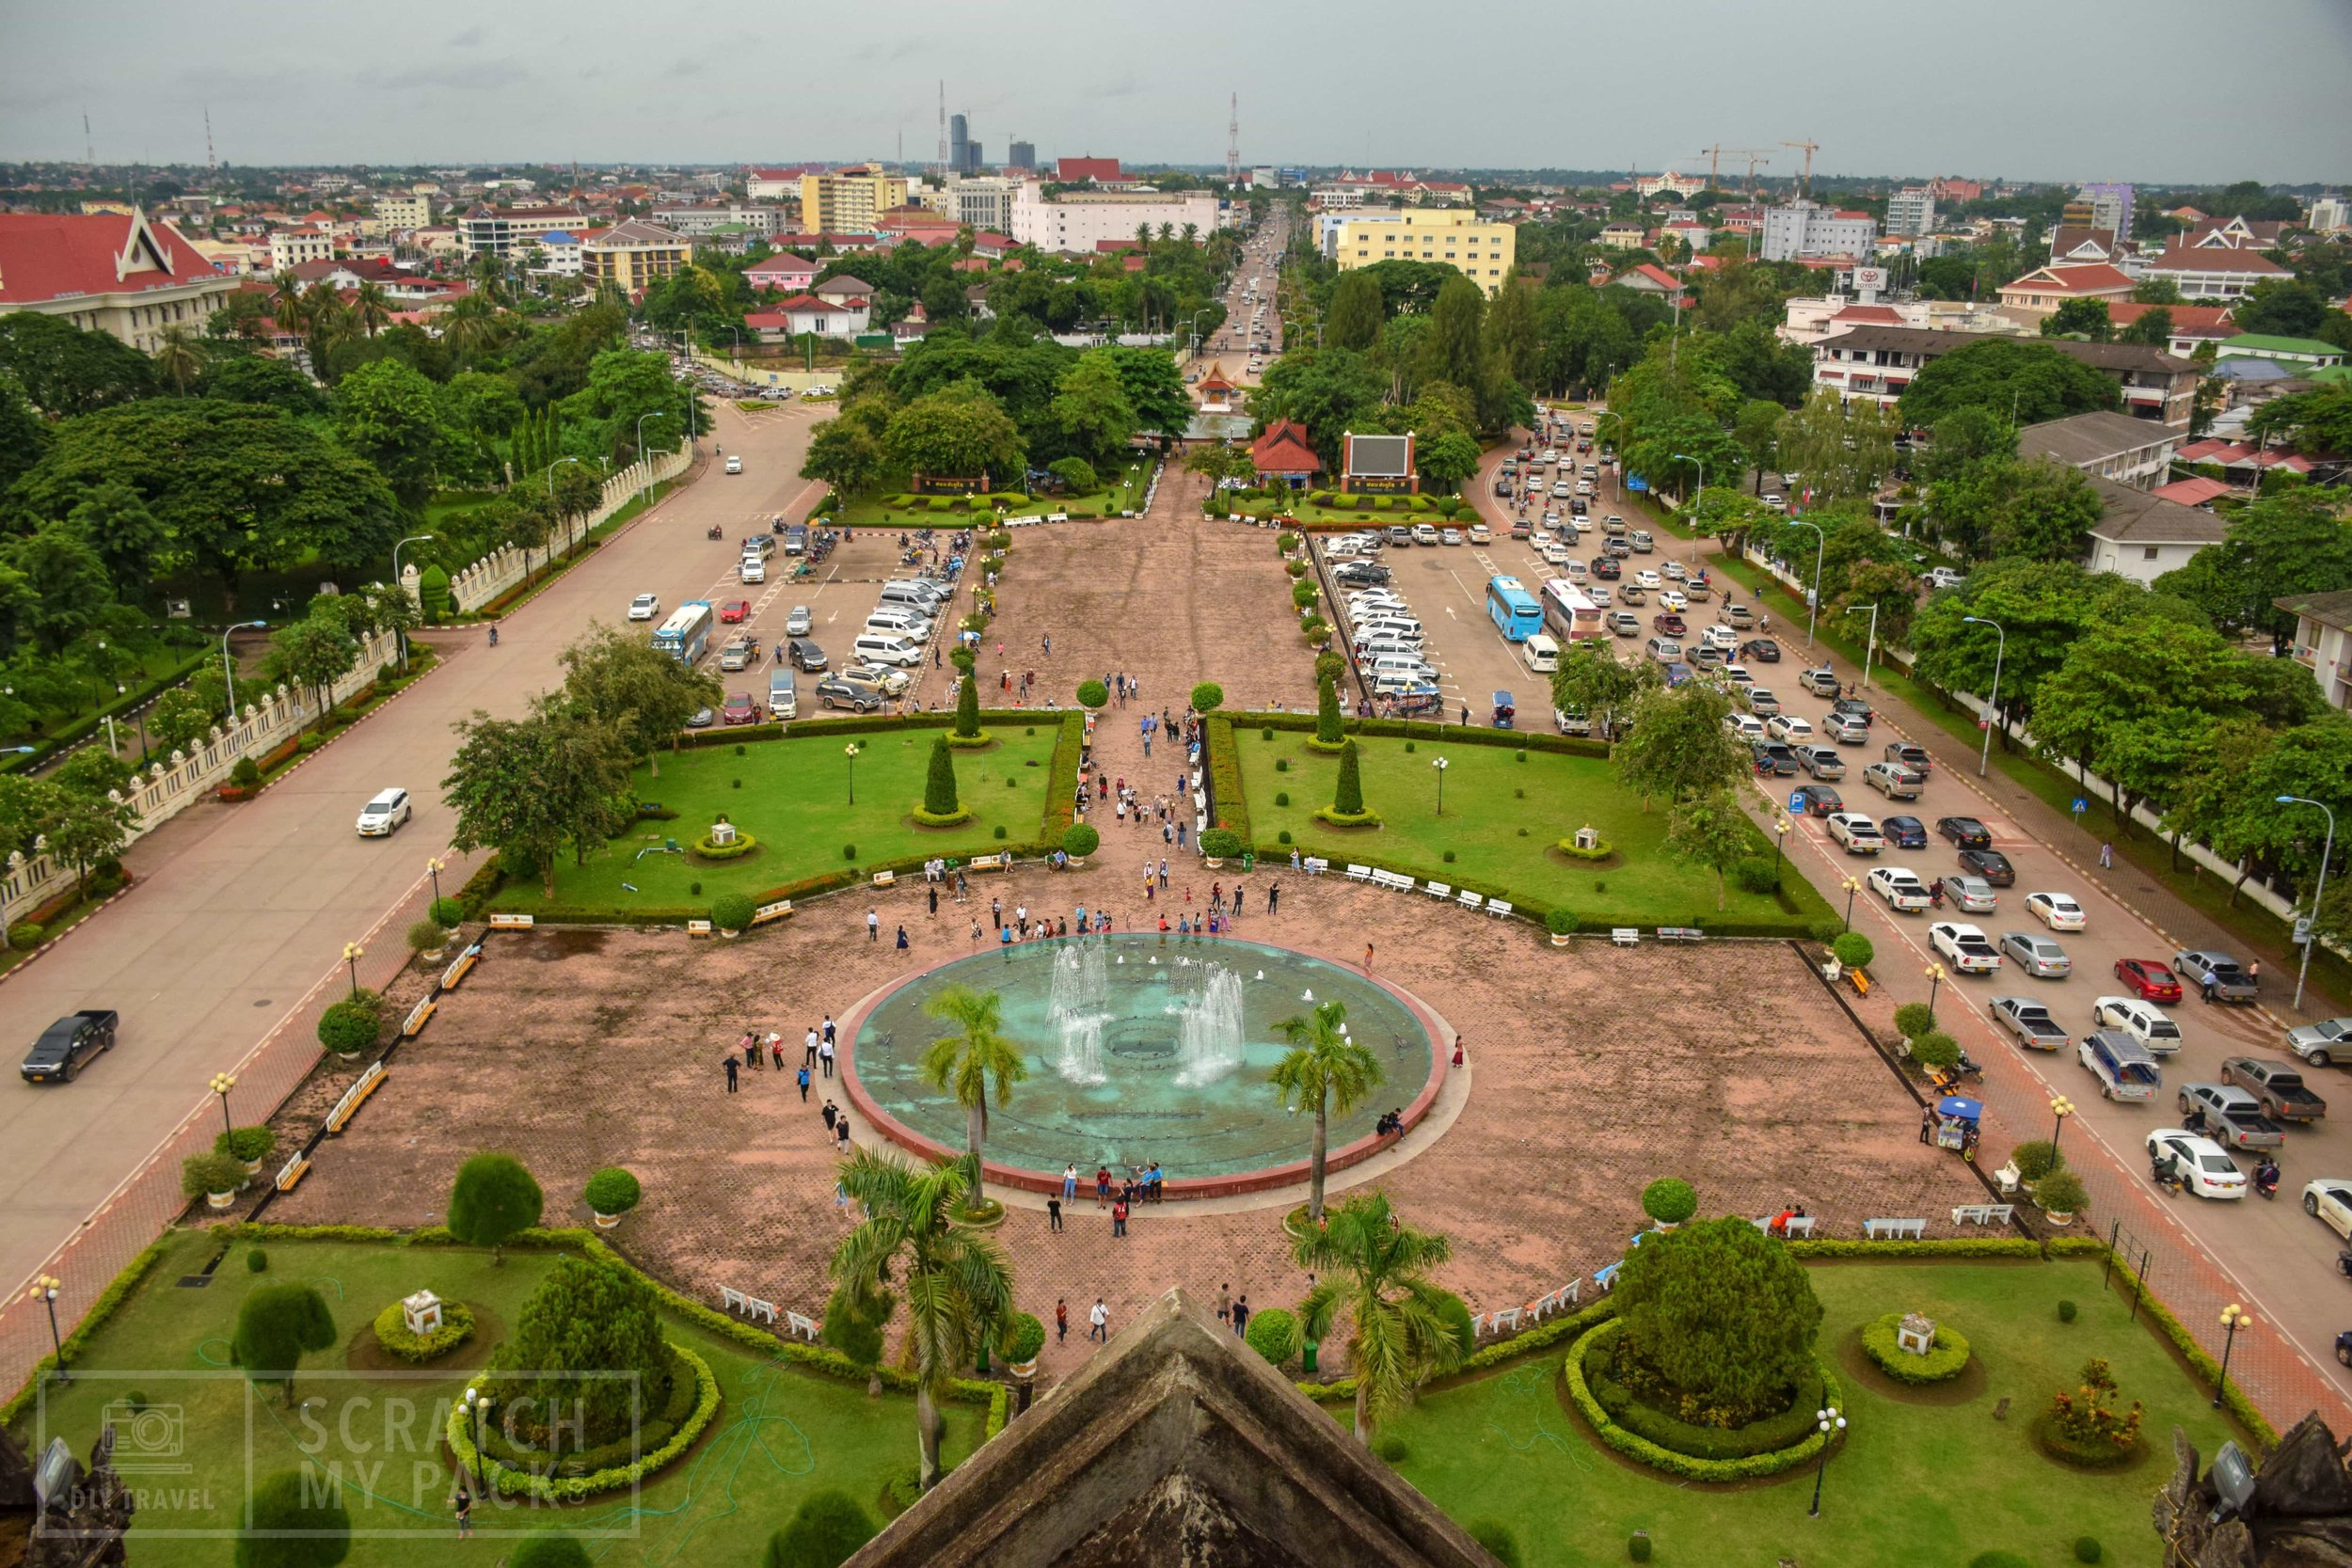 """Vientiane: View of the city from inside the """"Arc de Triumph"""" - The Arc is a gorgeous landmark in the middle of the city, directly down the street from the Presidential Palace. It has the nickname """"The Vertical Runway"""" as it was built with concrete given by the Americans for their airport runways. This was built instead."""